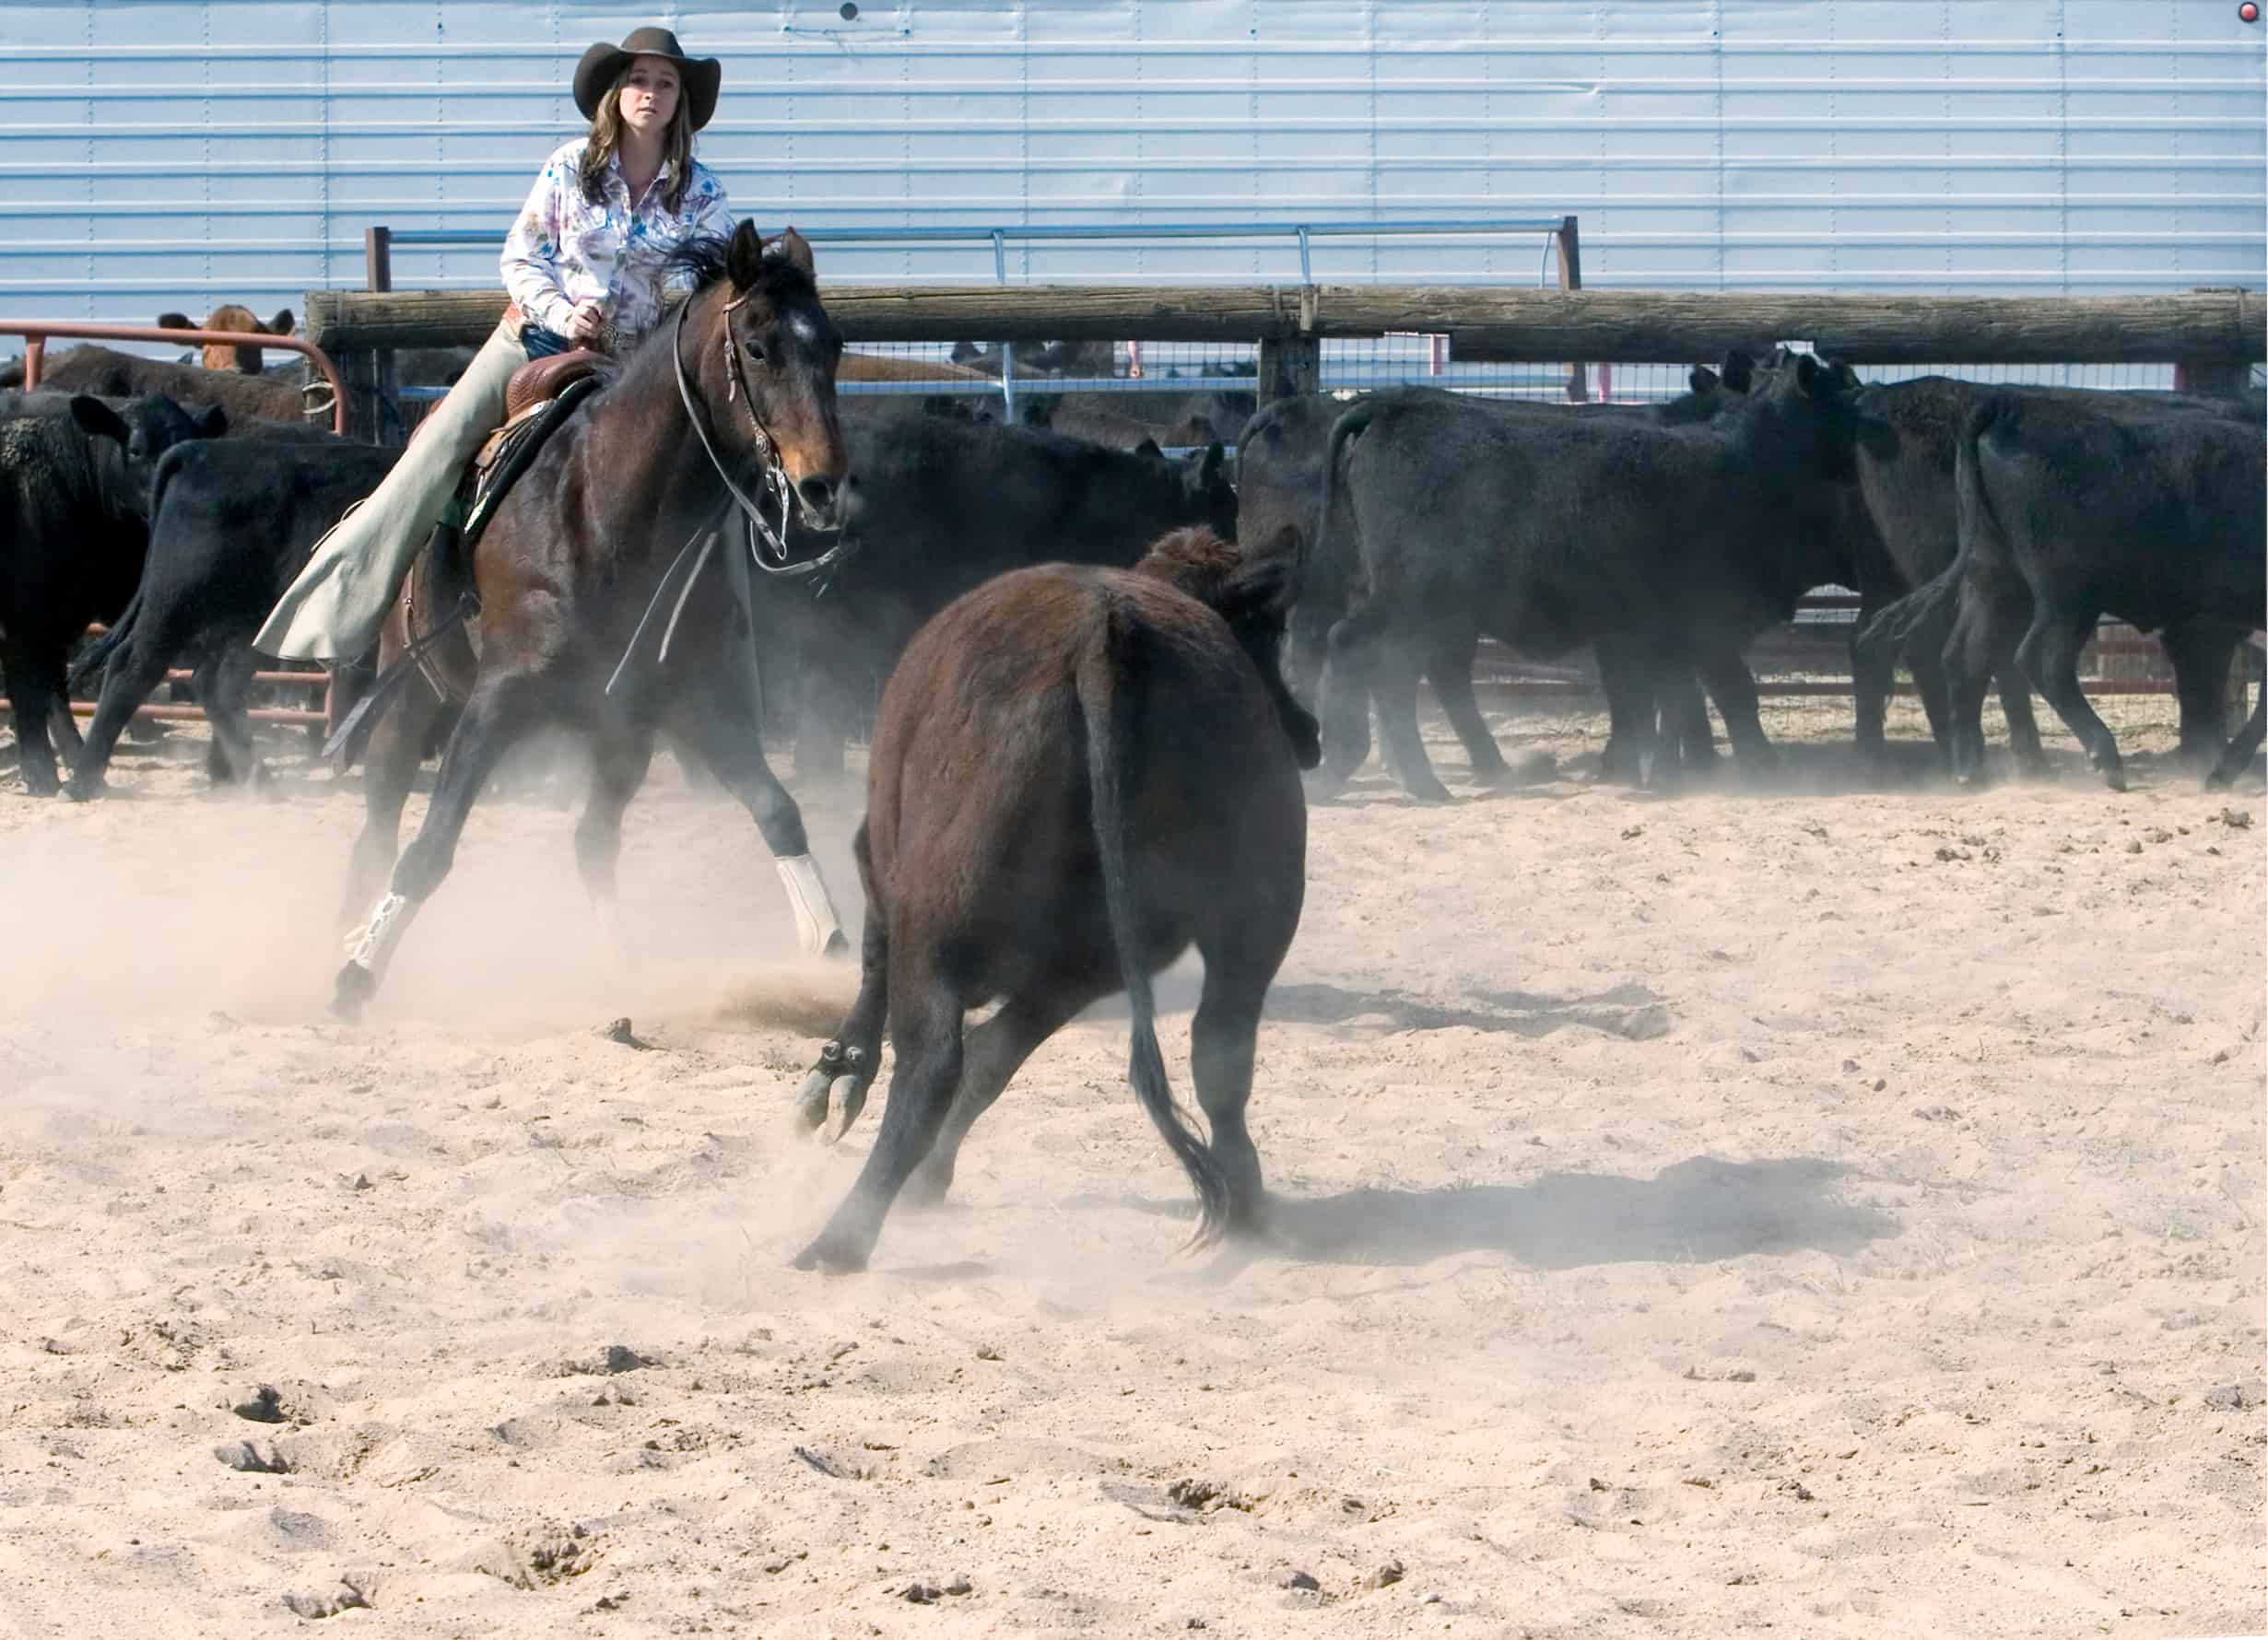 Photo of a Rodeo cow-girl, and her horse competing in the cattle cutting competition.